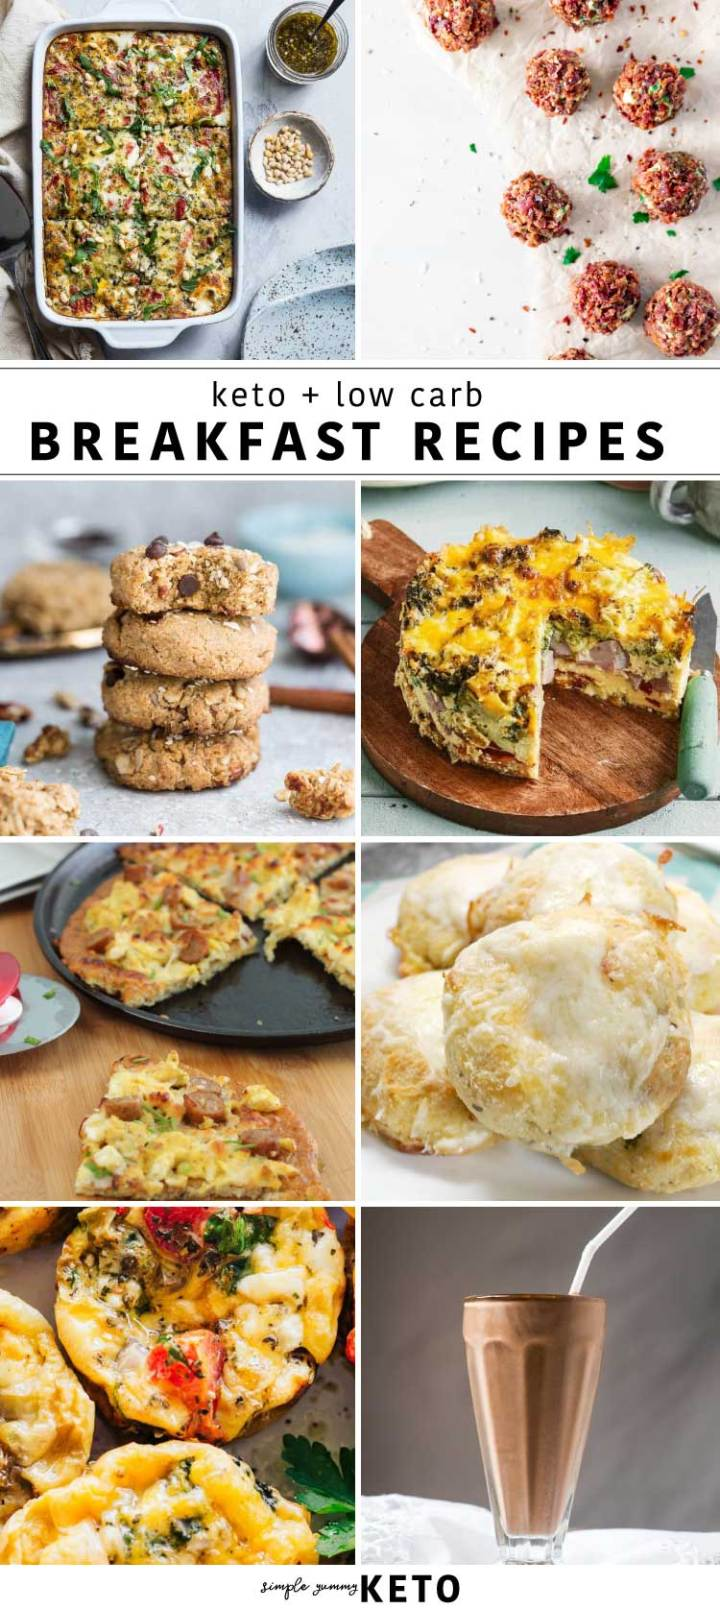 keto and low carb breakfast recipes